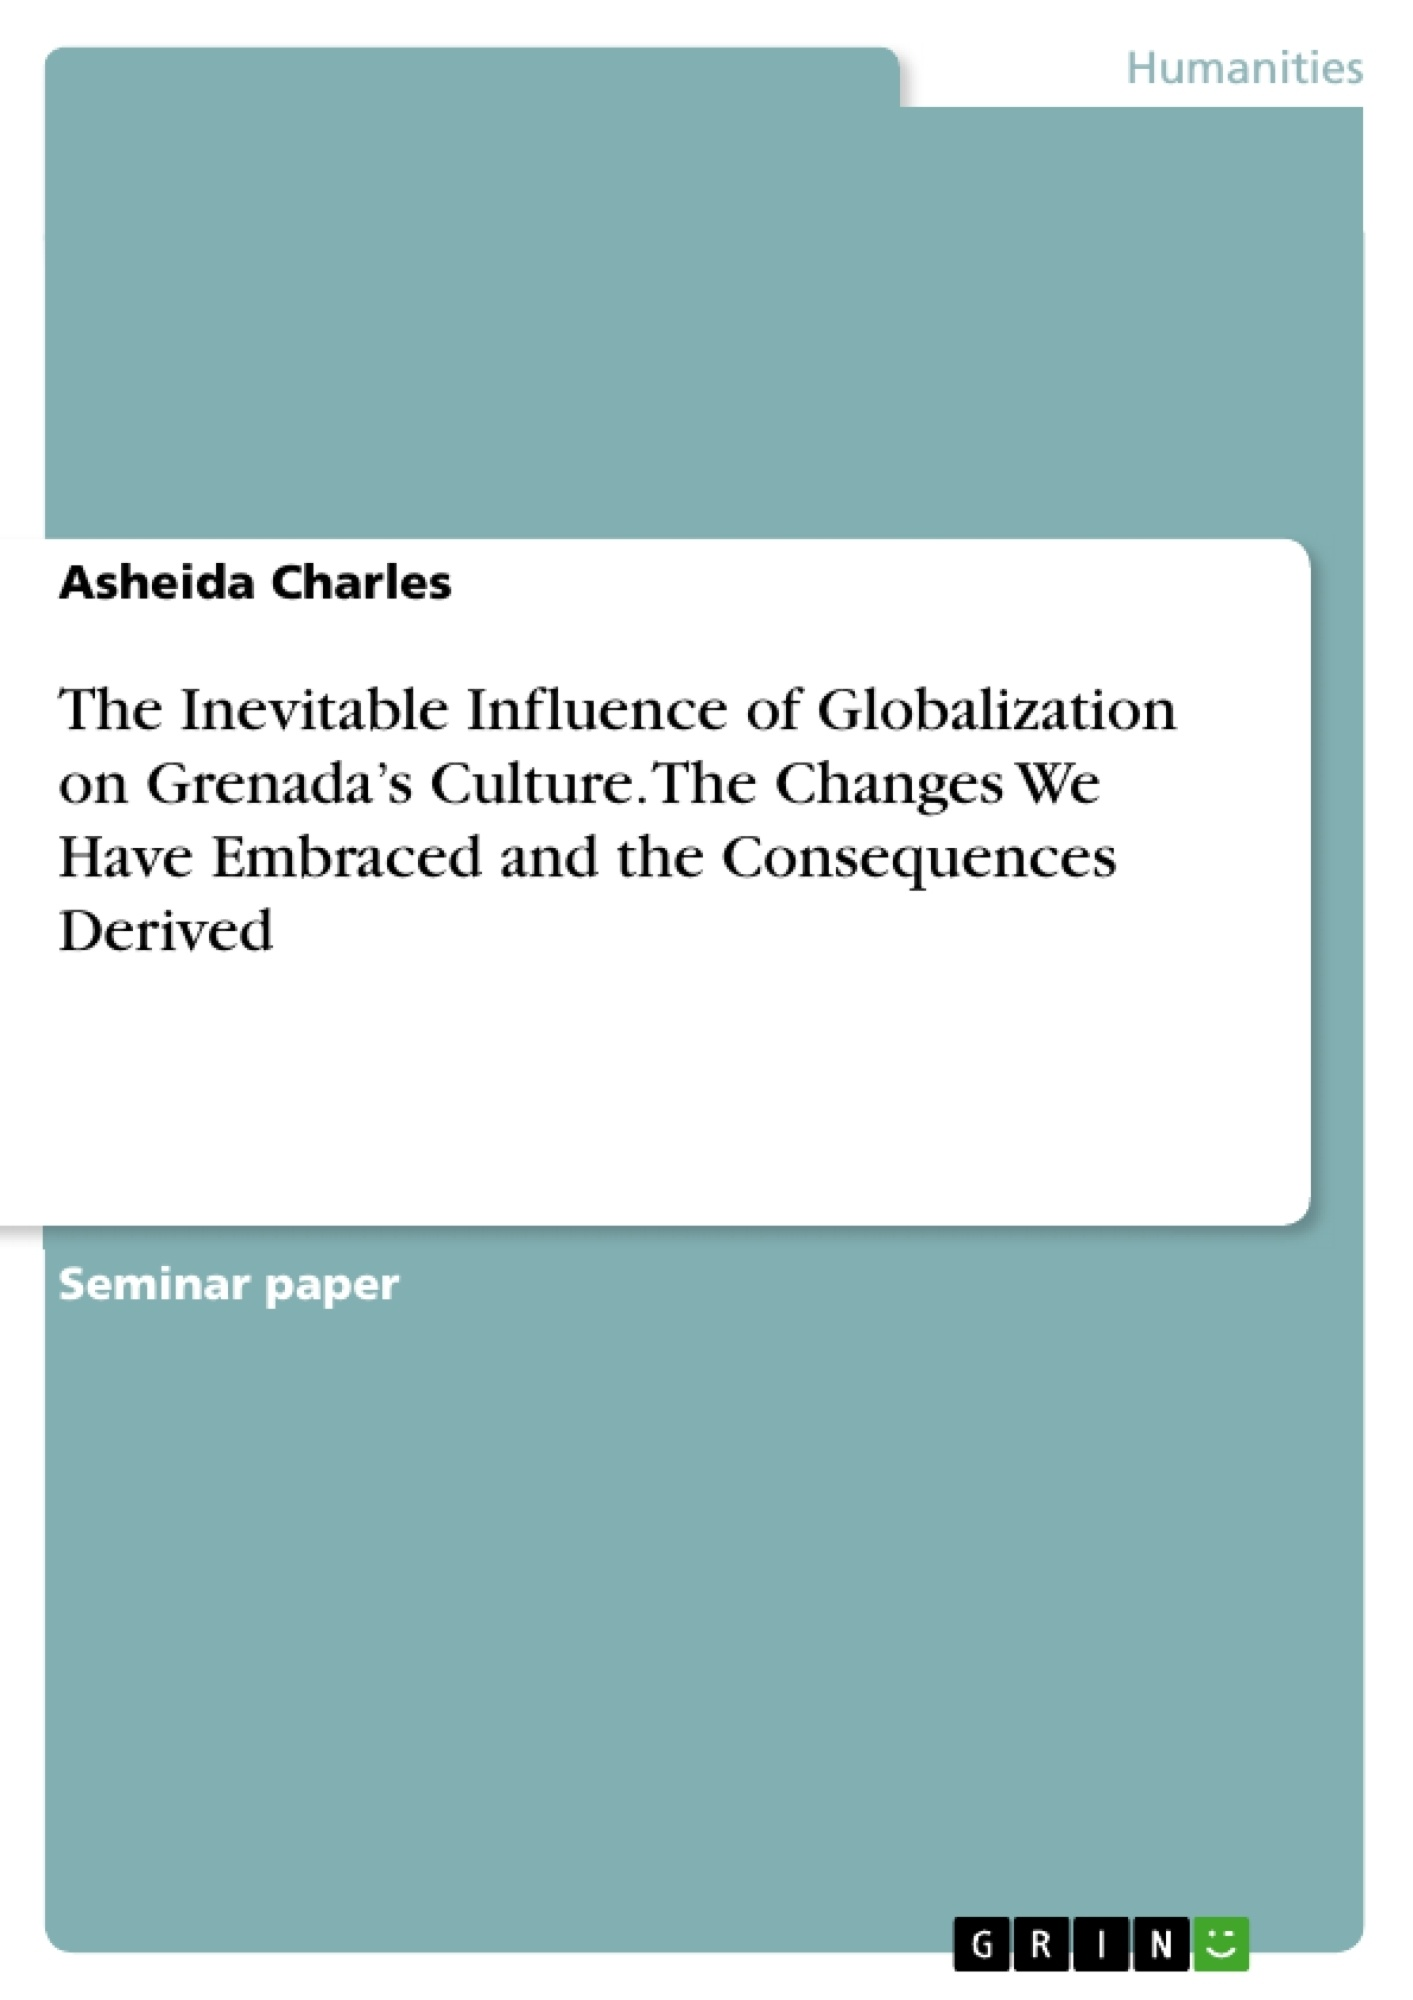 Title: The Inevitable Influence of Globalization on Grenada's Culture. The Changes We Have Embraced and the Consequences Derived